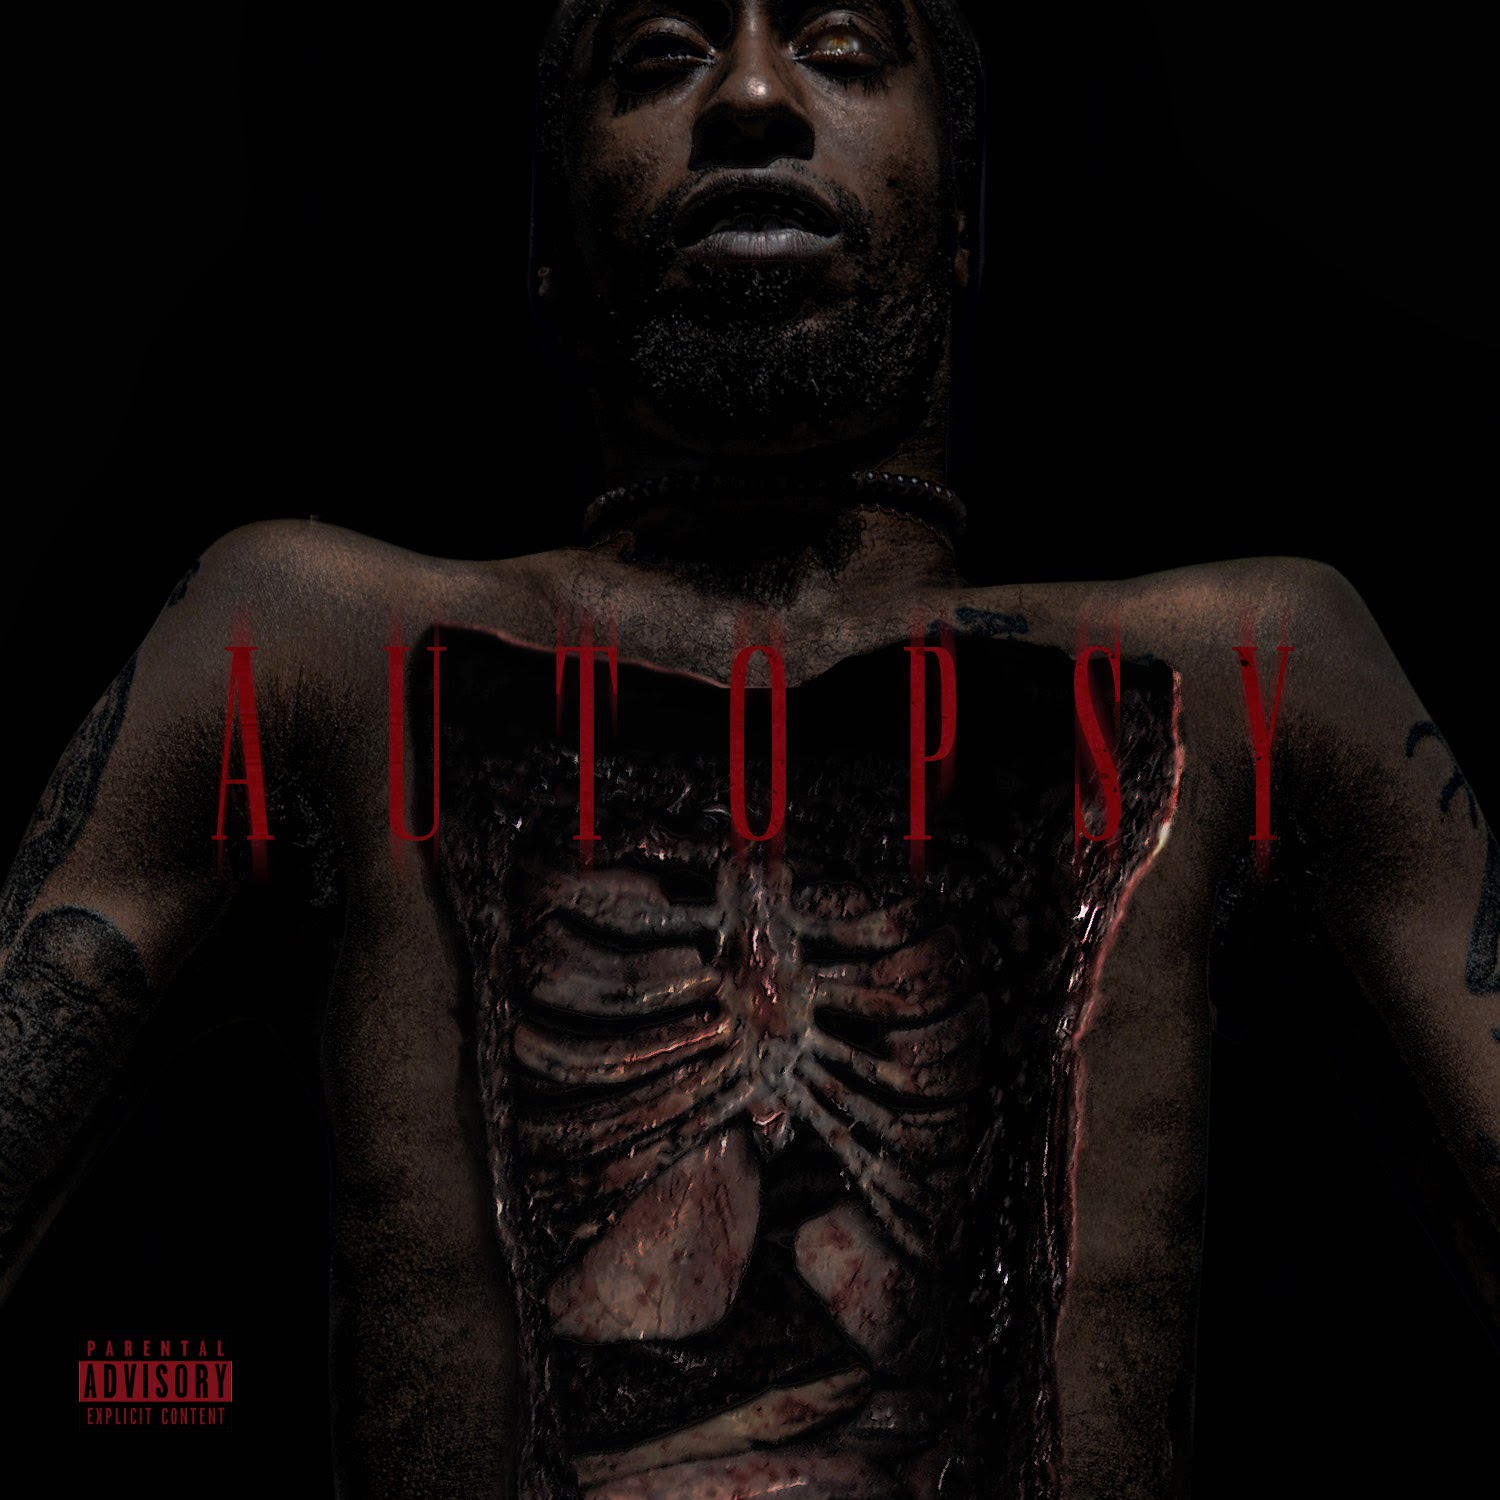 http://sevidemic.bigcartel.com/product/autopsy-pre-order